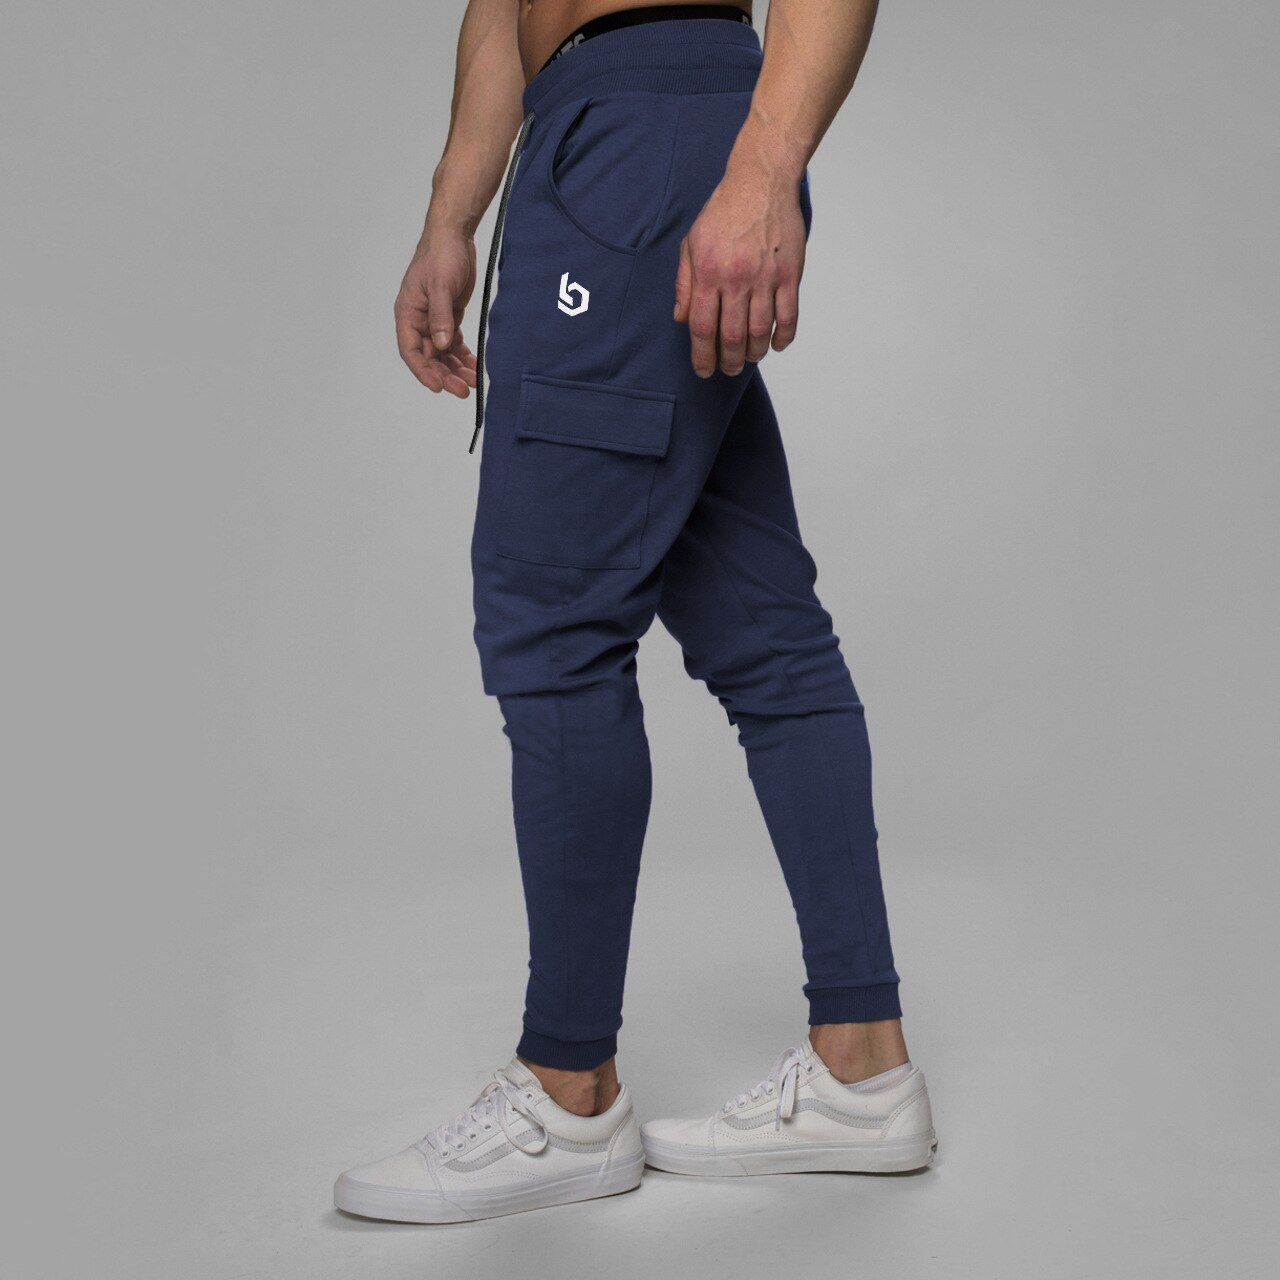 Photo of Men's Navy blue workout joggers sweatpants plus size